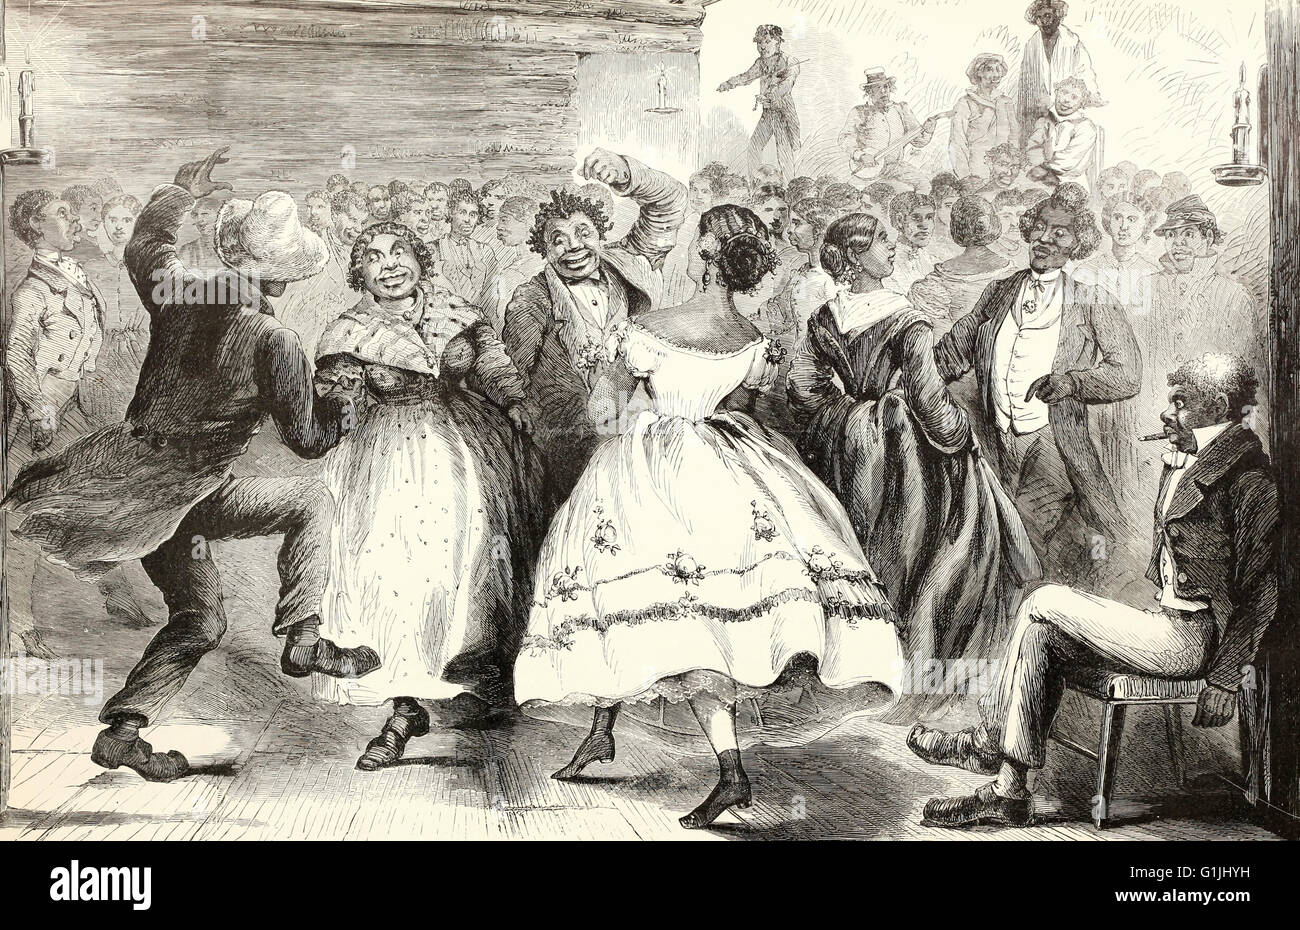 A New Year's Day contraband ball at Vicksburg, Mississippi during the USA Civil War - Stock Image